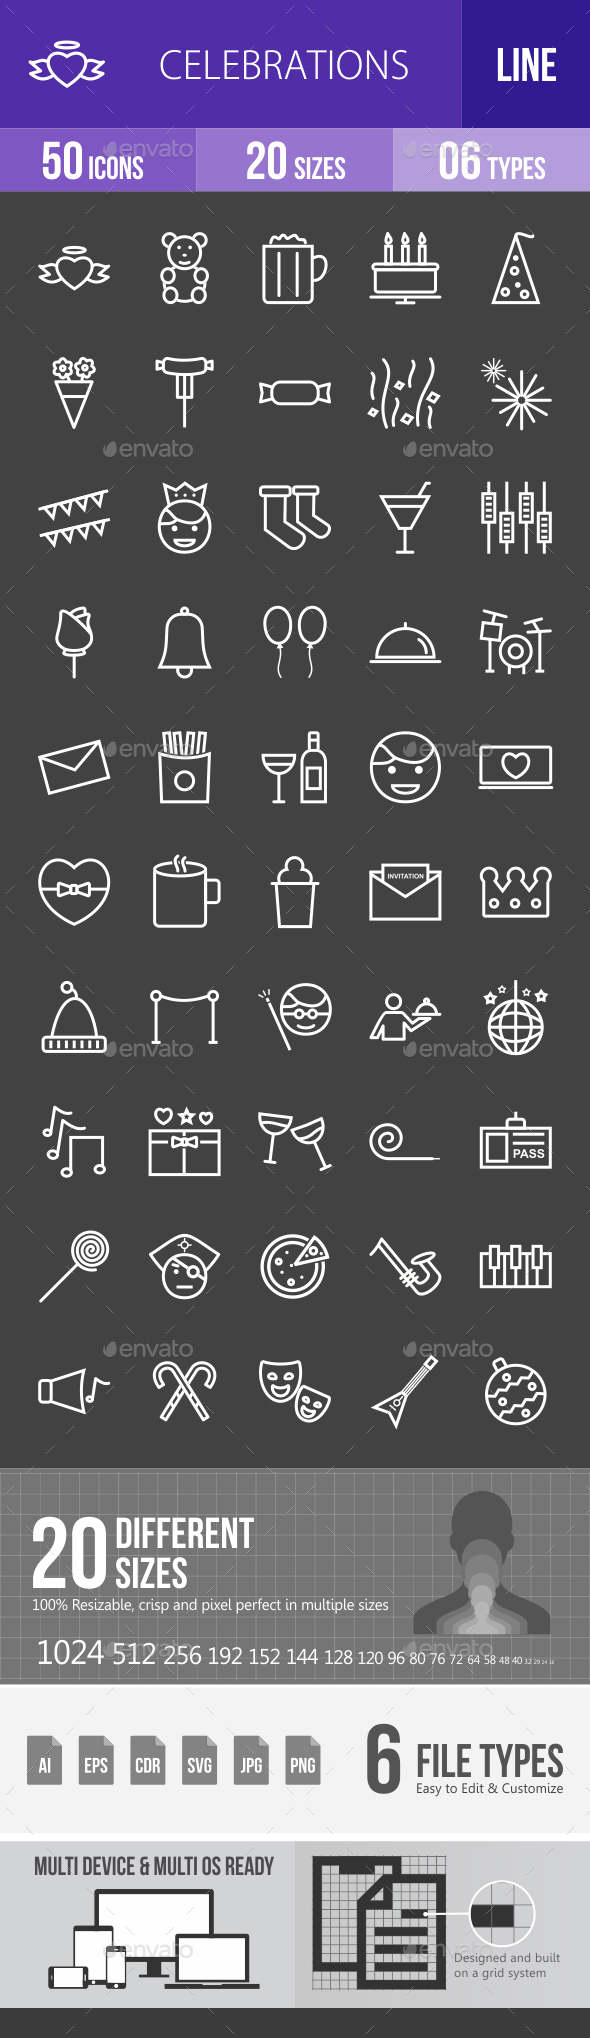 Celebrations Line Inverted Icons - Icons